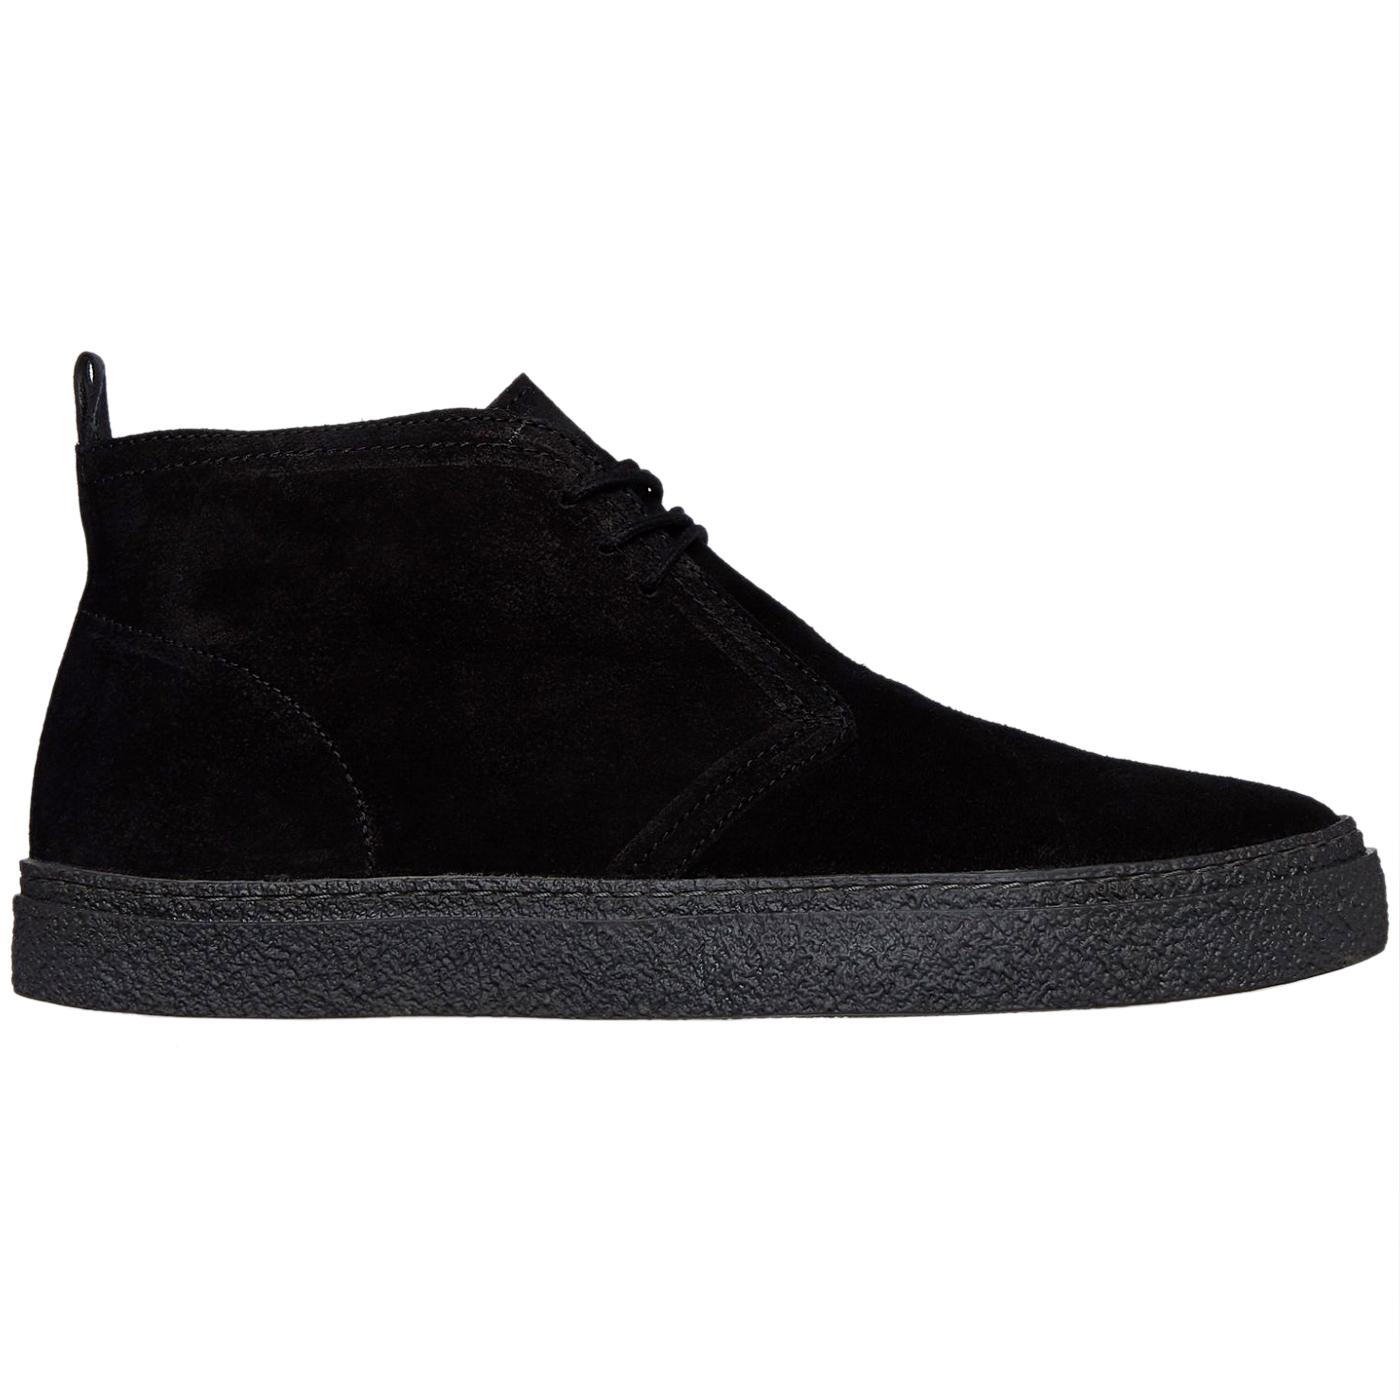 Hawley FRED PERRY Mod Crepe Desert Boots - Black